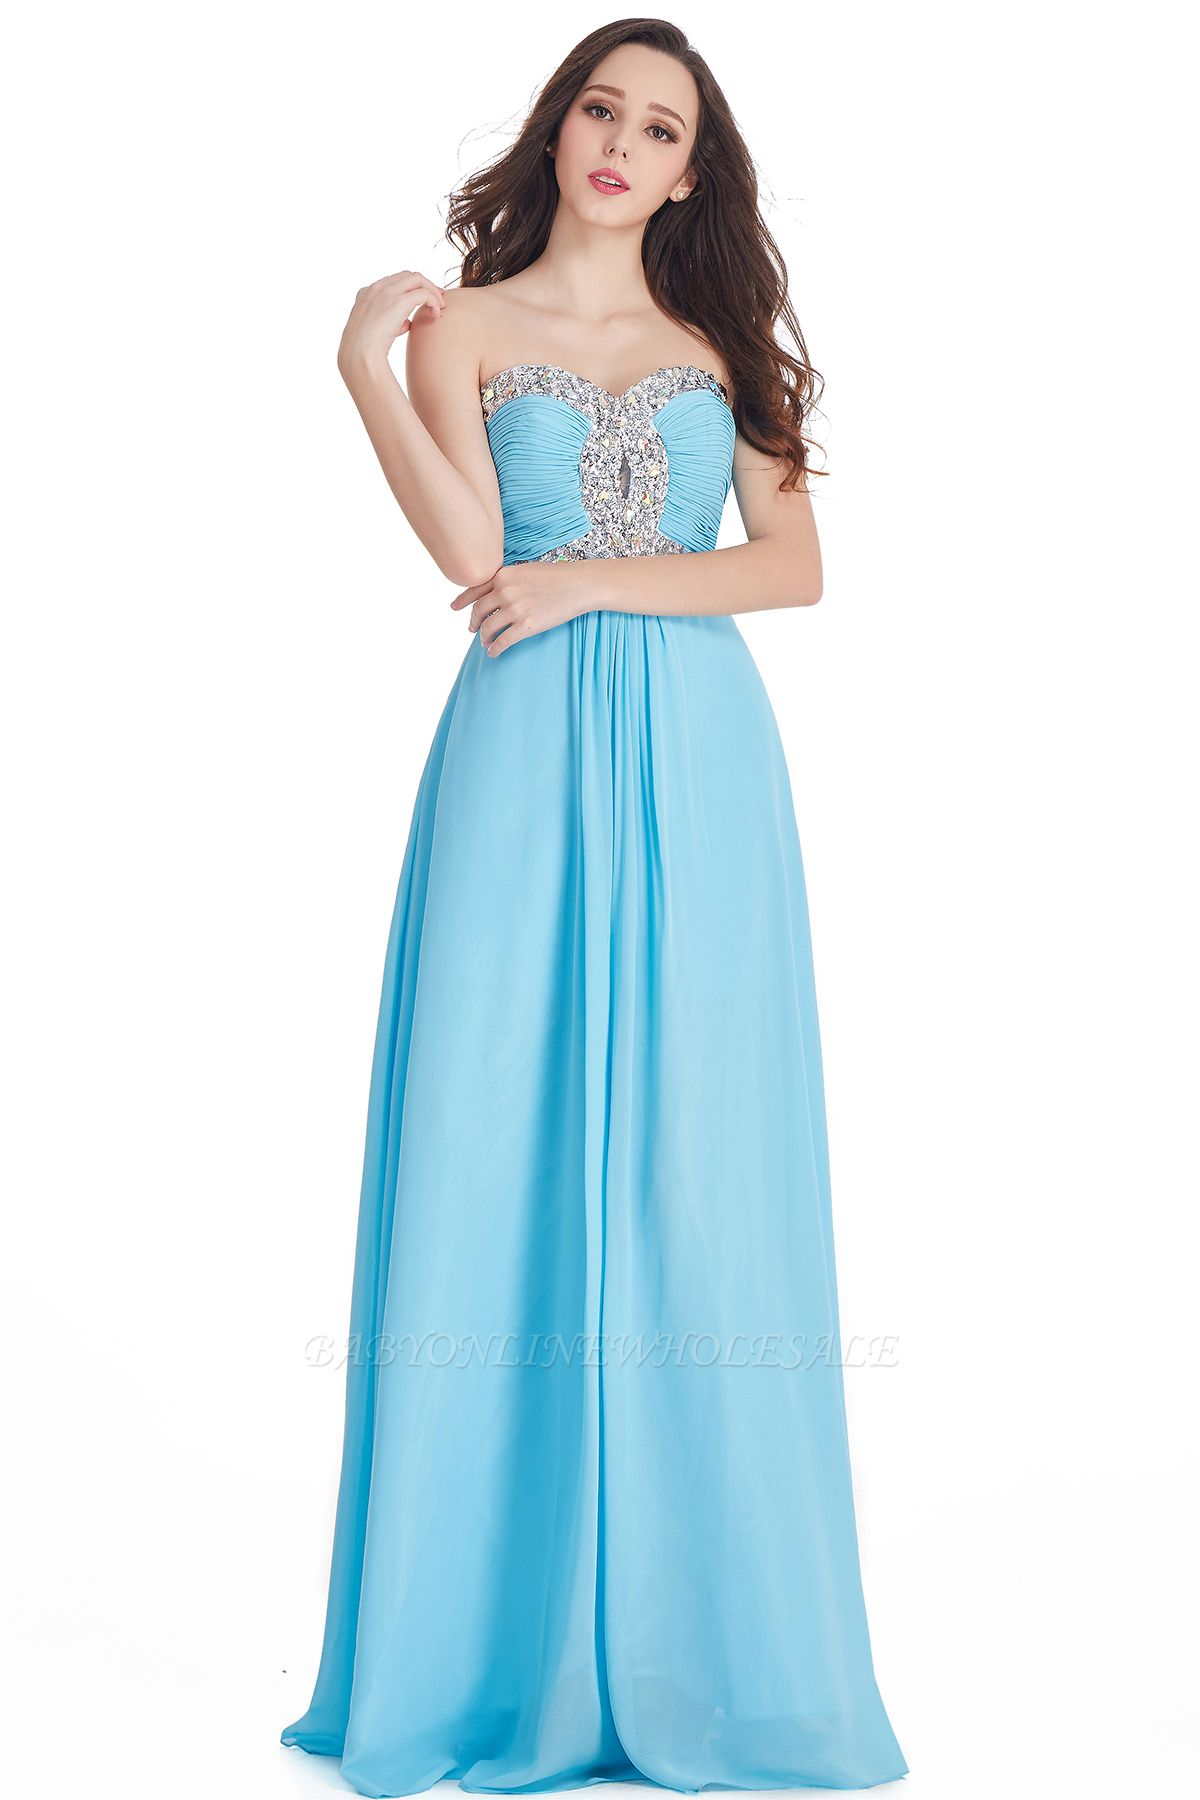 CRYSTAL | Sheath Floor-Length Sweetheart Chiffon Prom Dresses with Crystals